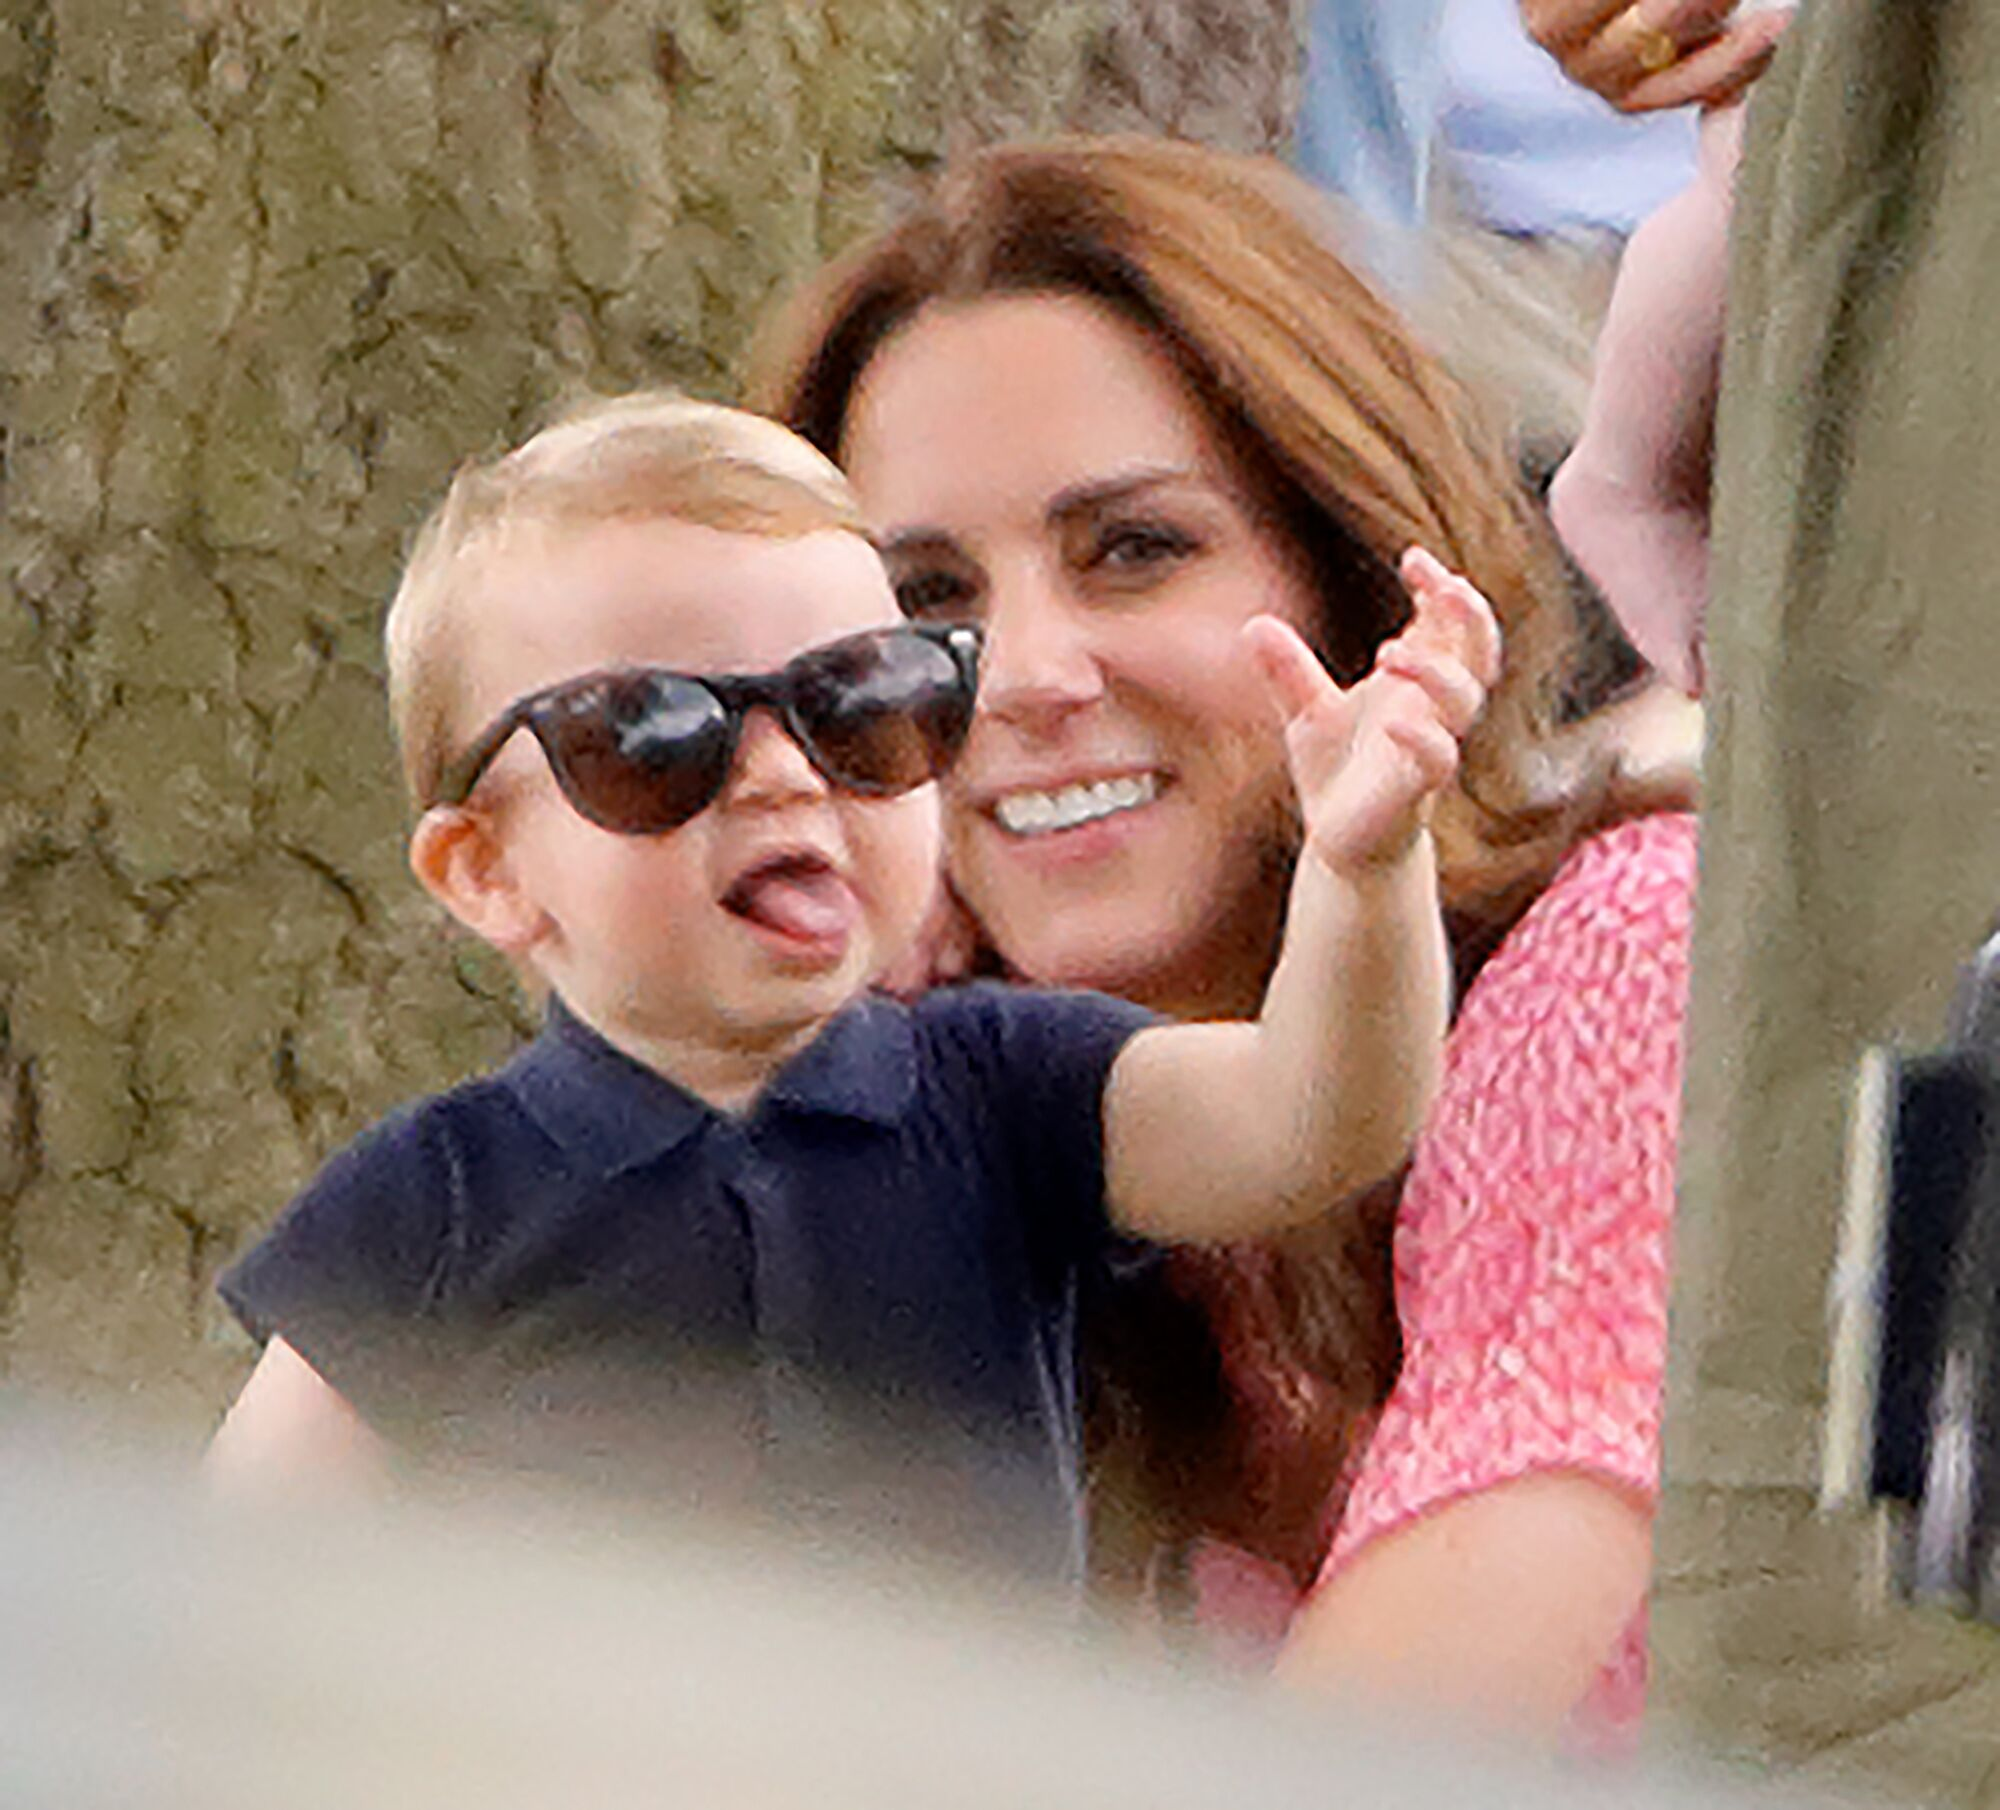 Prince Louis and Duchess Kate at the King Power Royal Charity Polo Match on July 10, 2019, in Wokingham, England | Photo: Max Mumby/Indigo/Getty Images